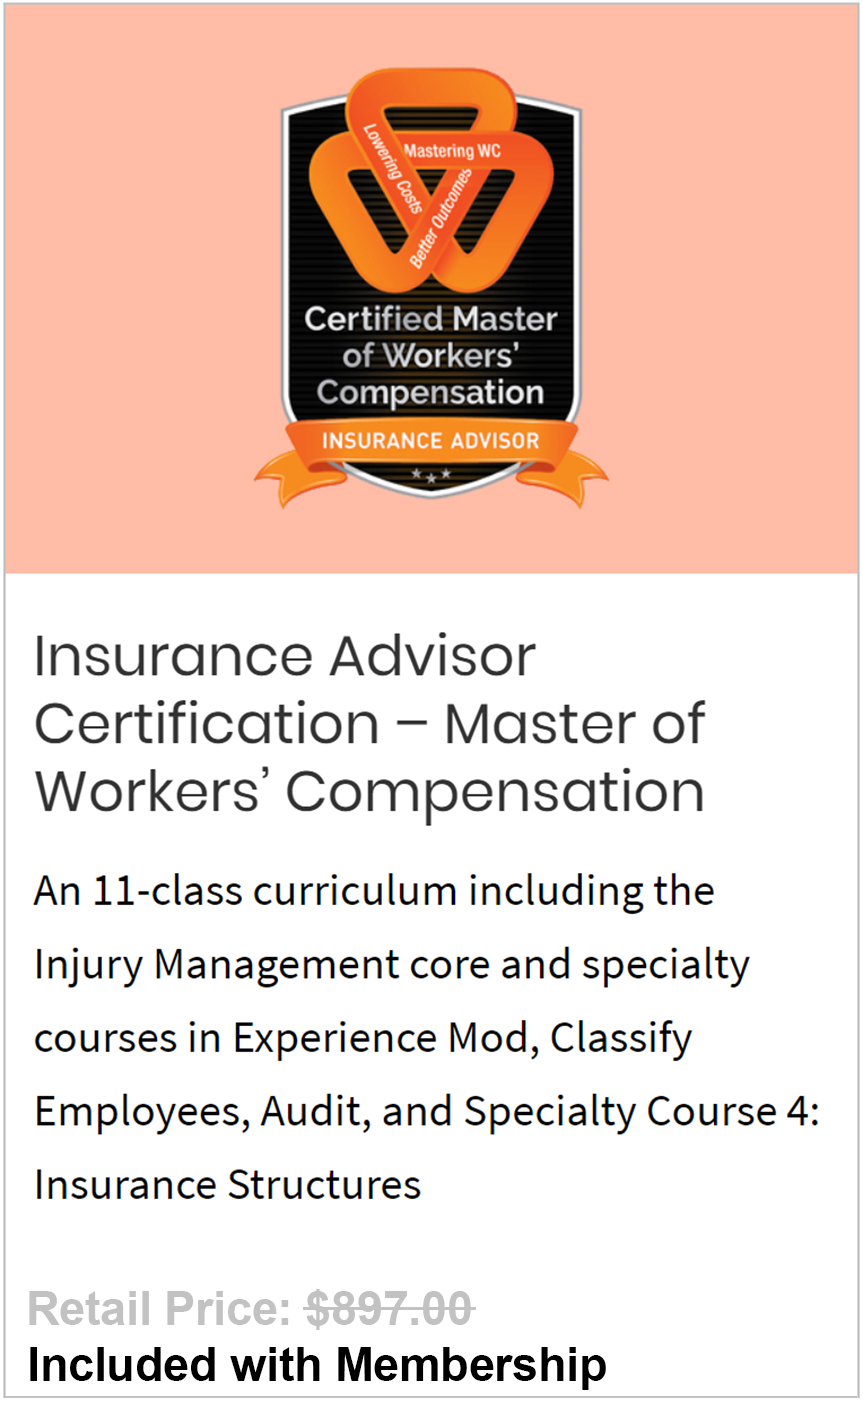 Insurance Advisor Certification – Master of Workers' Compensation